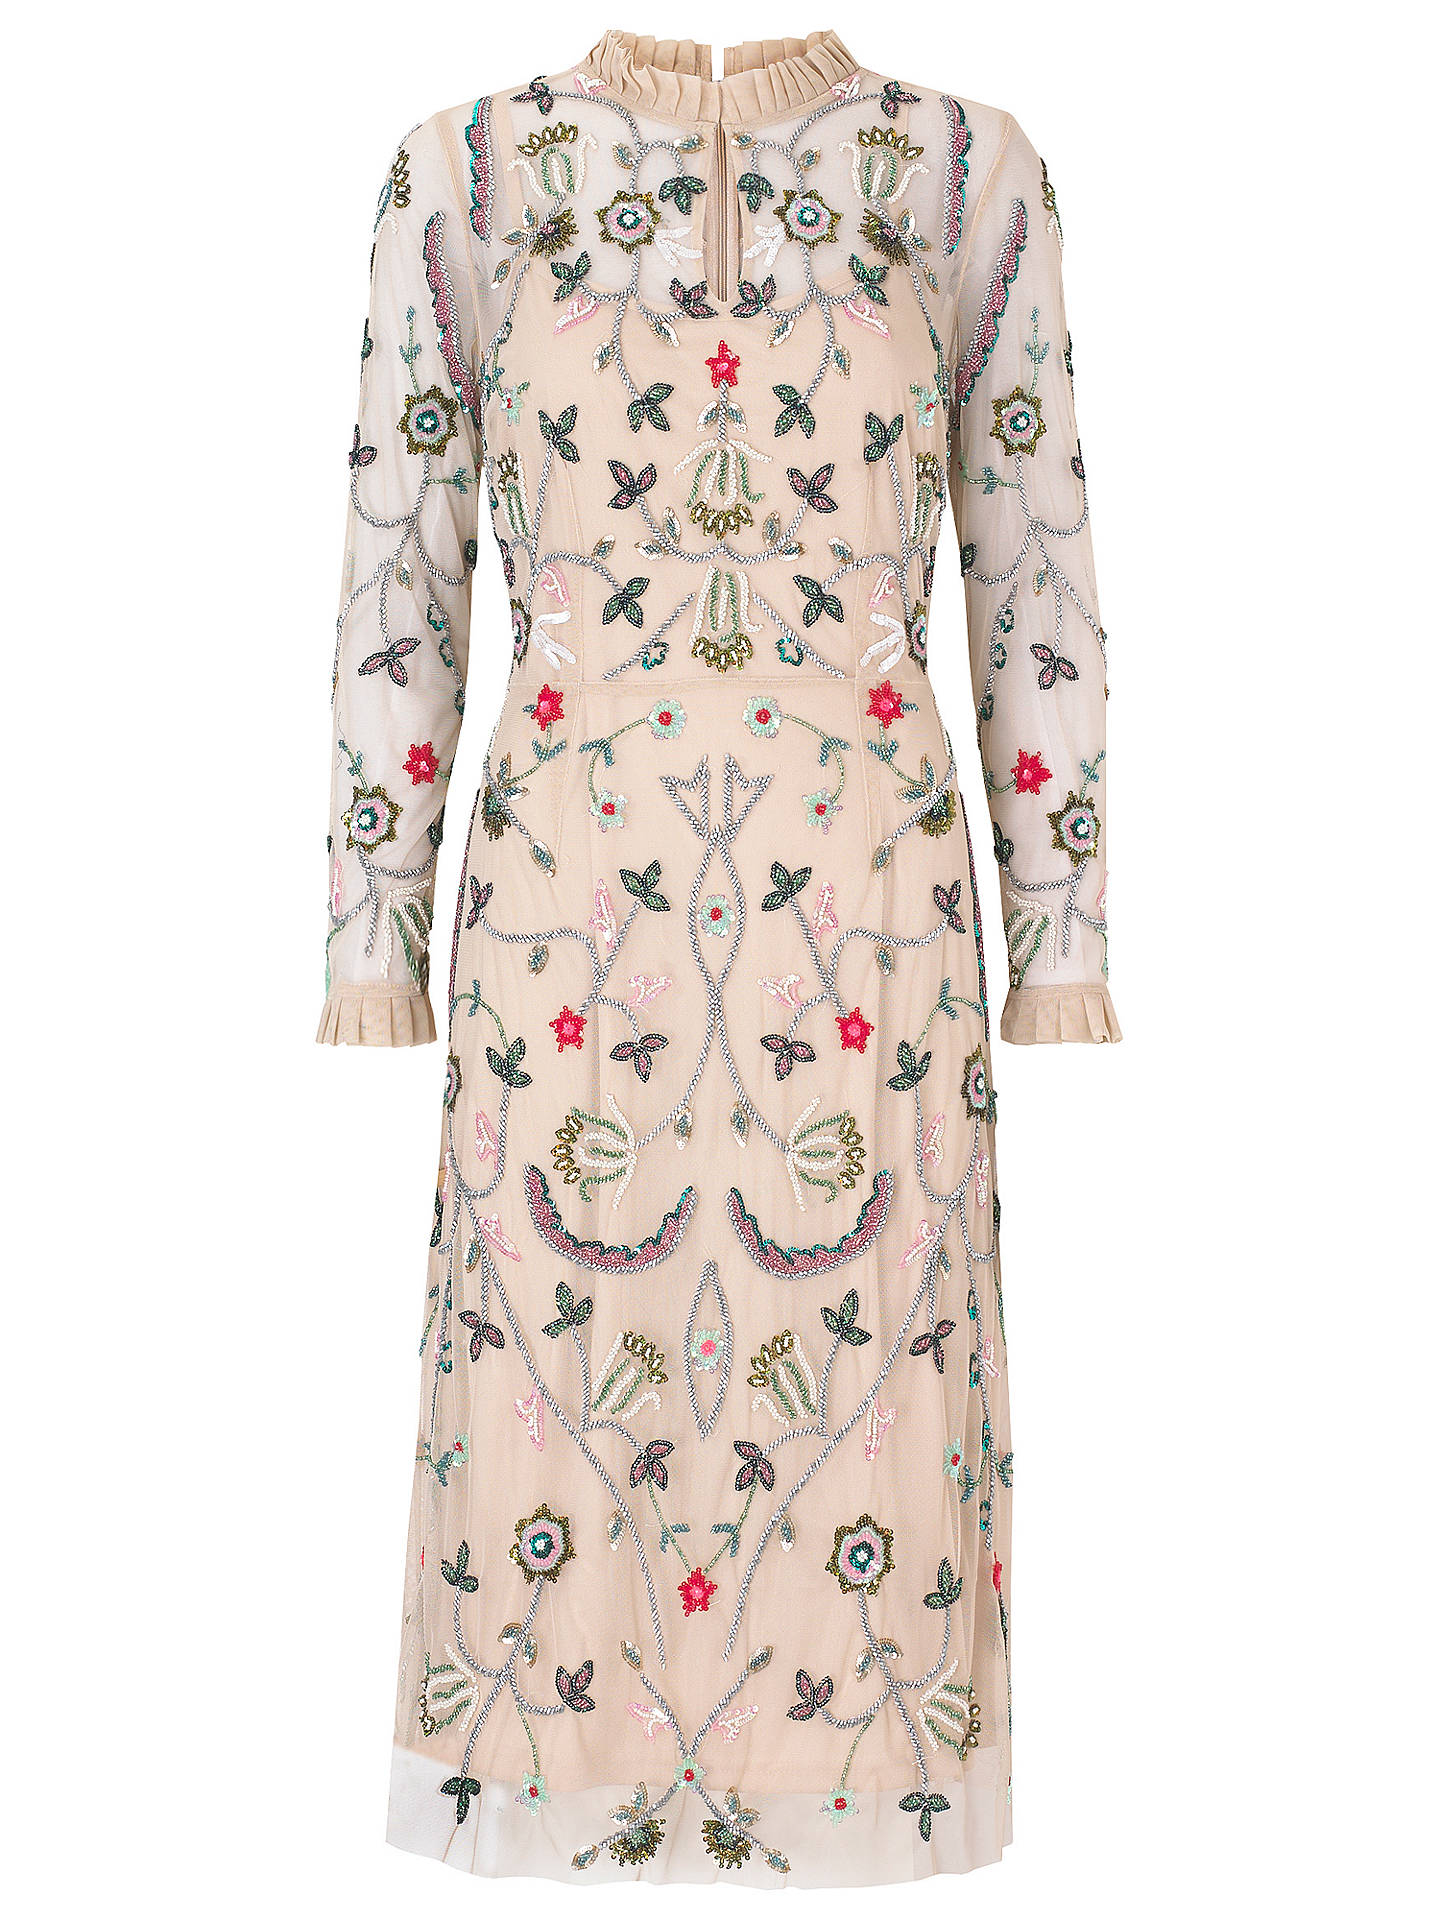 BuyRaishma Floral Frill Dress, Nude, 12 Online at johnlewis.com